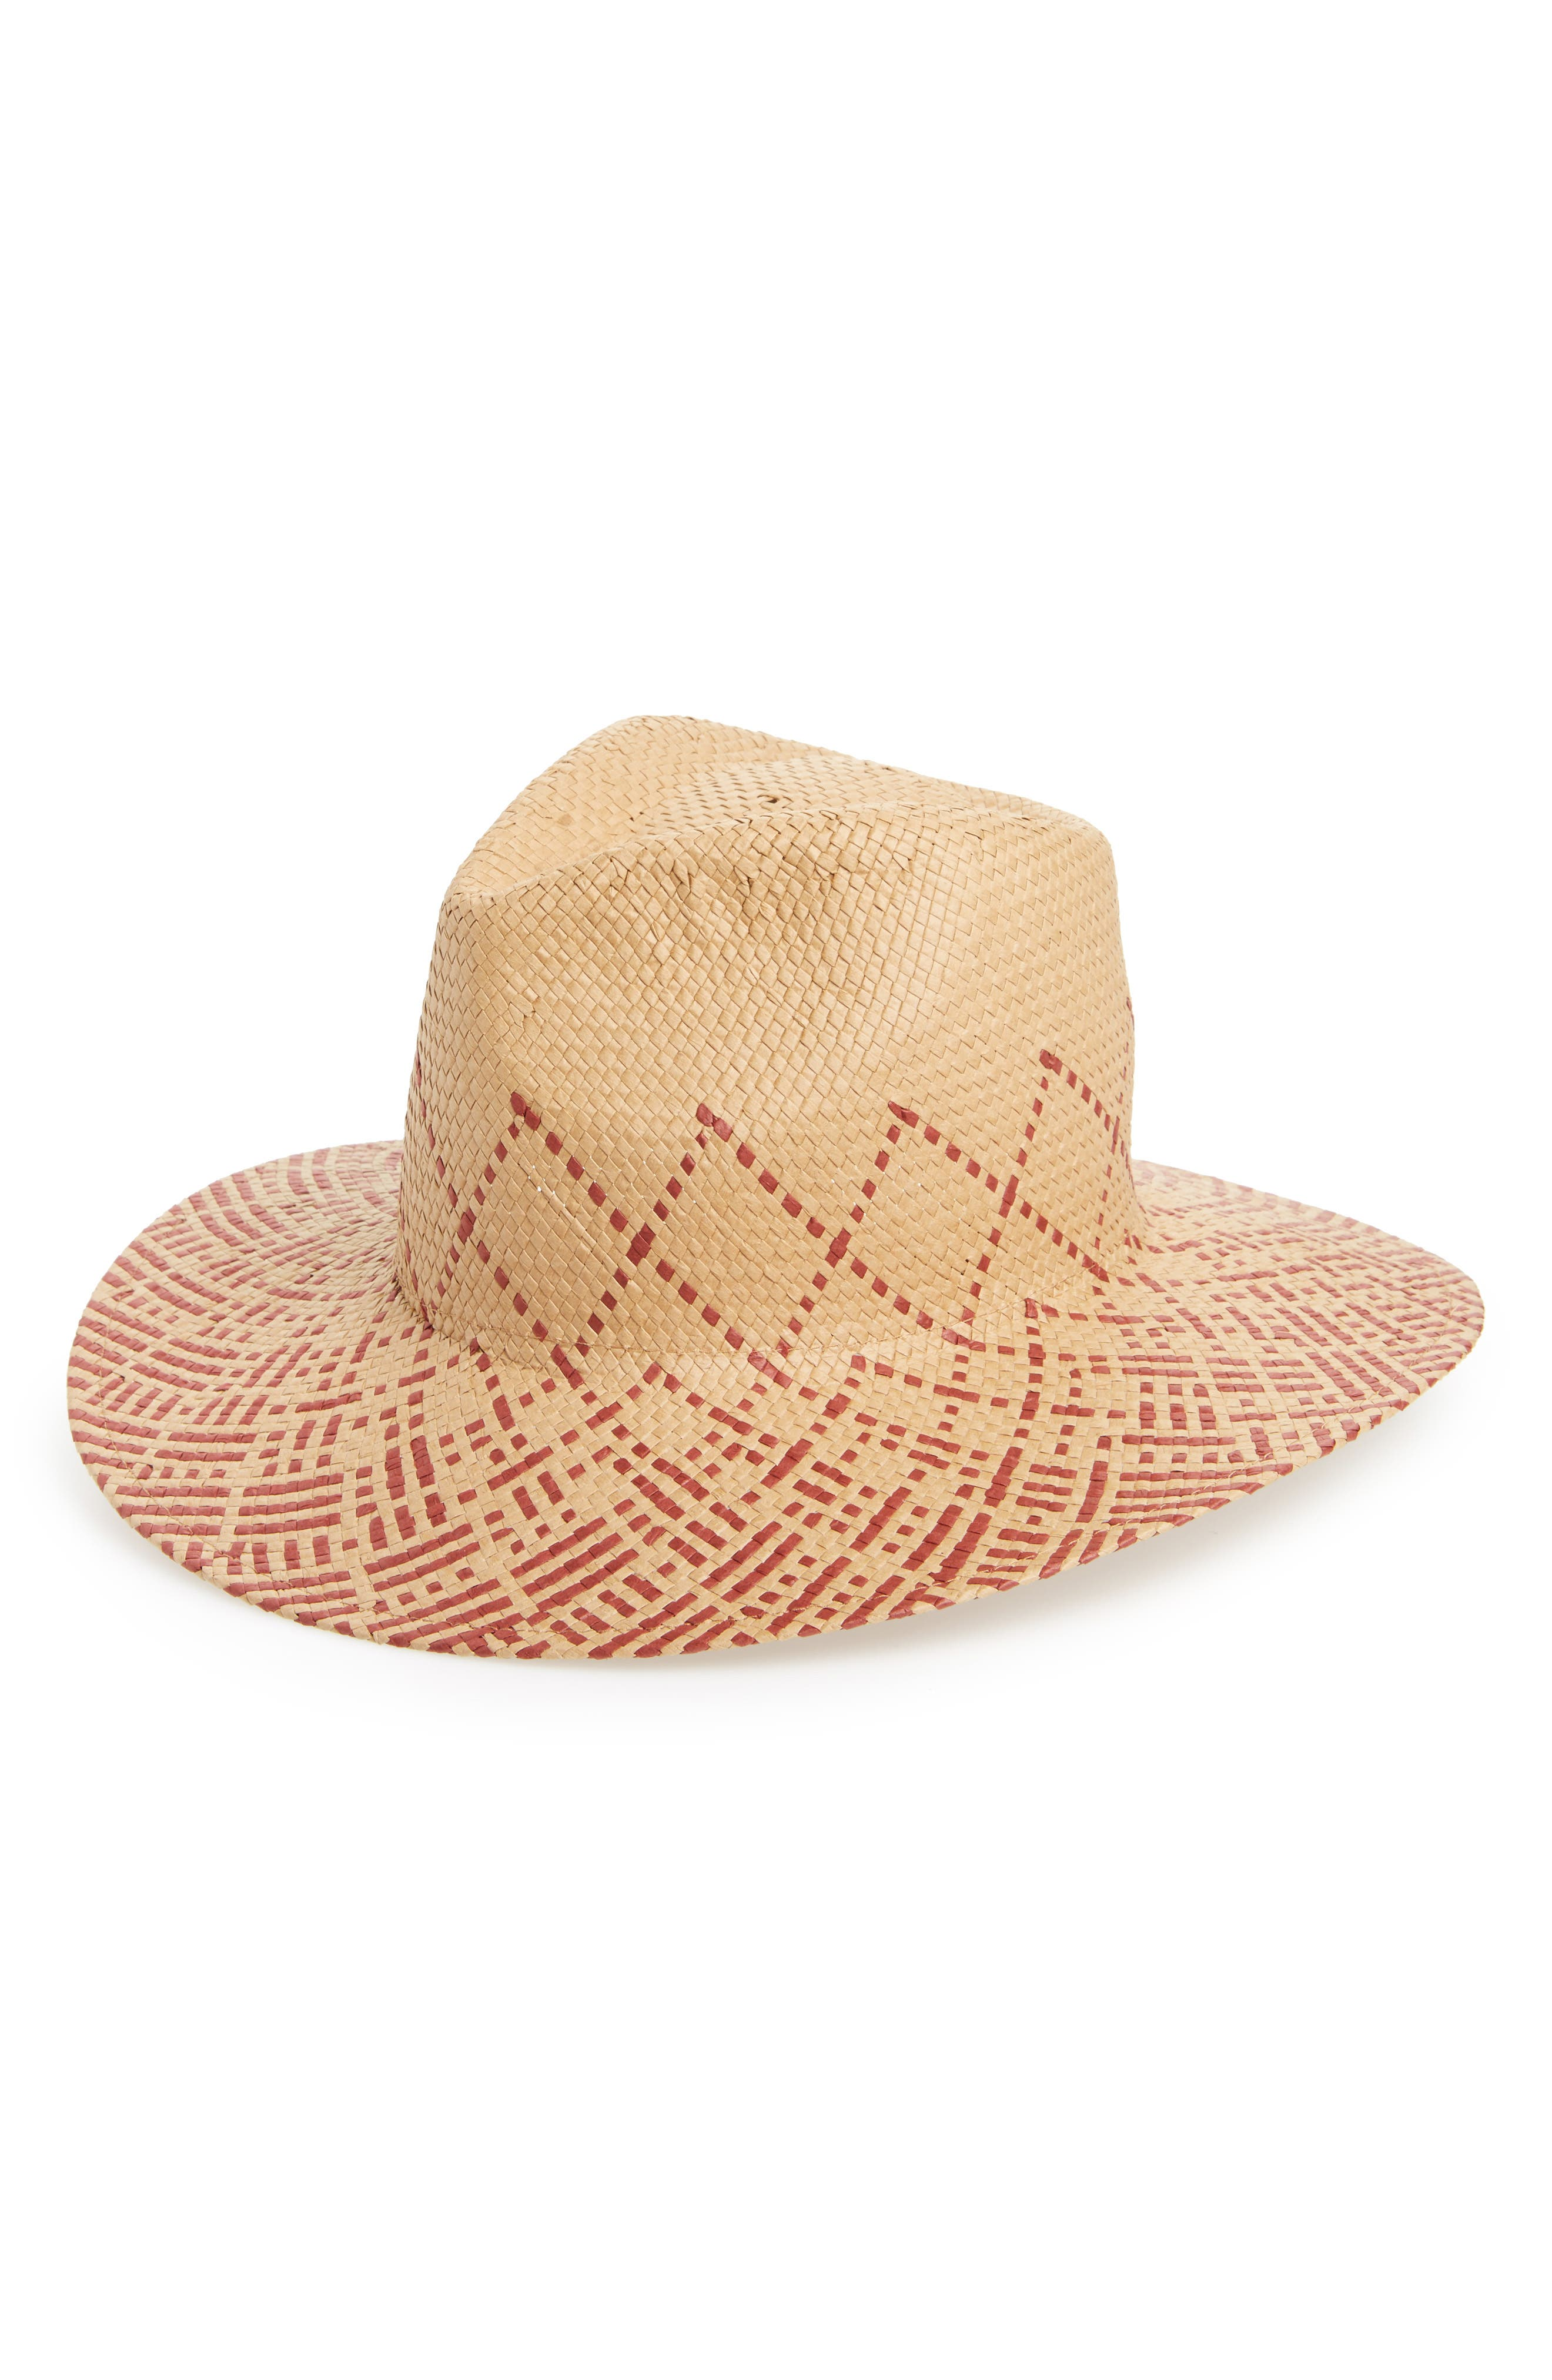 Two-Tone Straw Hat,                         Main,                         color, 250